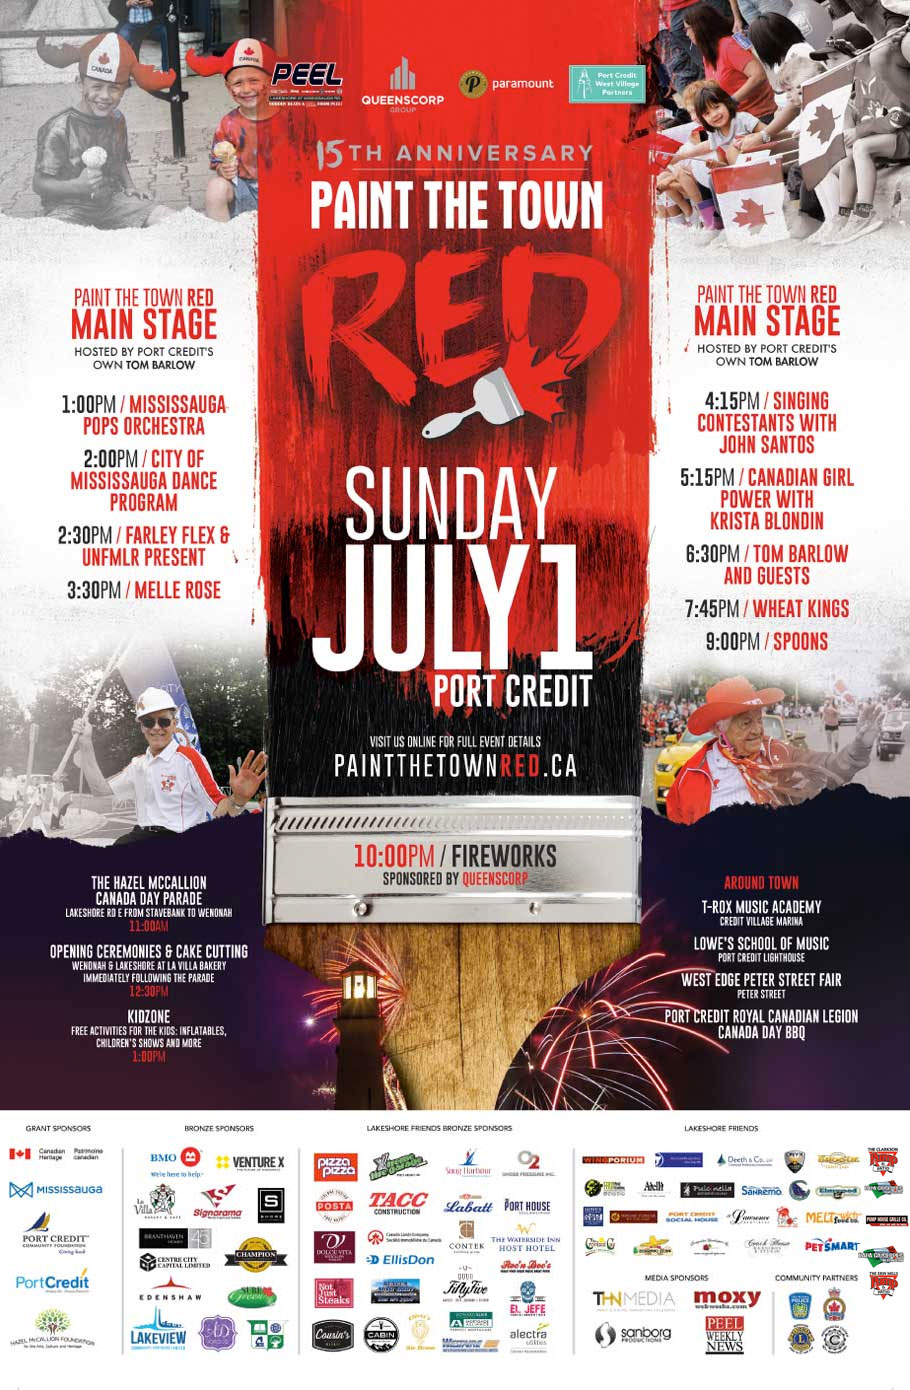 Paint The Town Red Canada Day 2018 Modern Mississauga Media.jpg